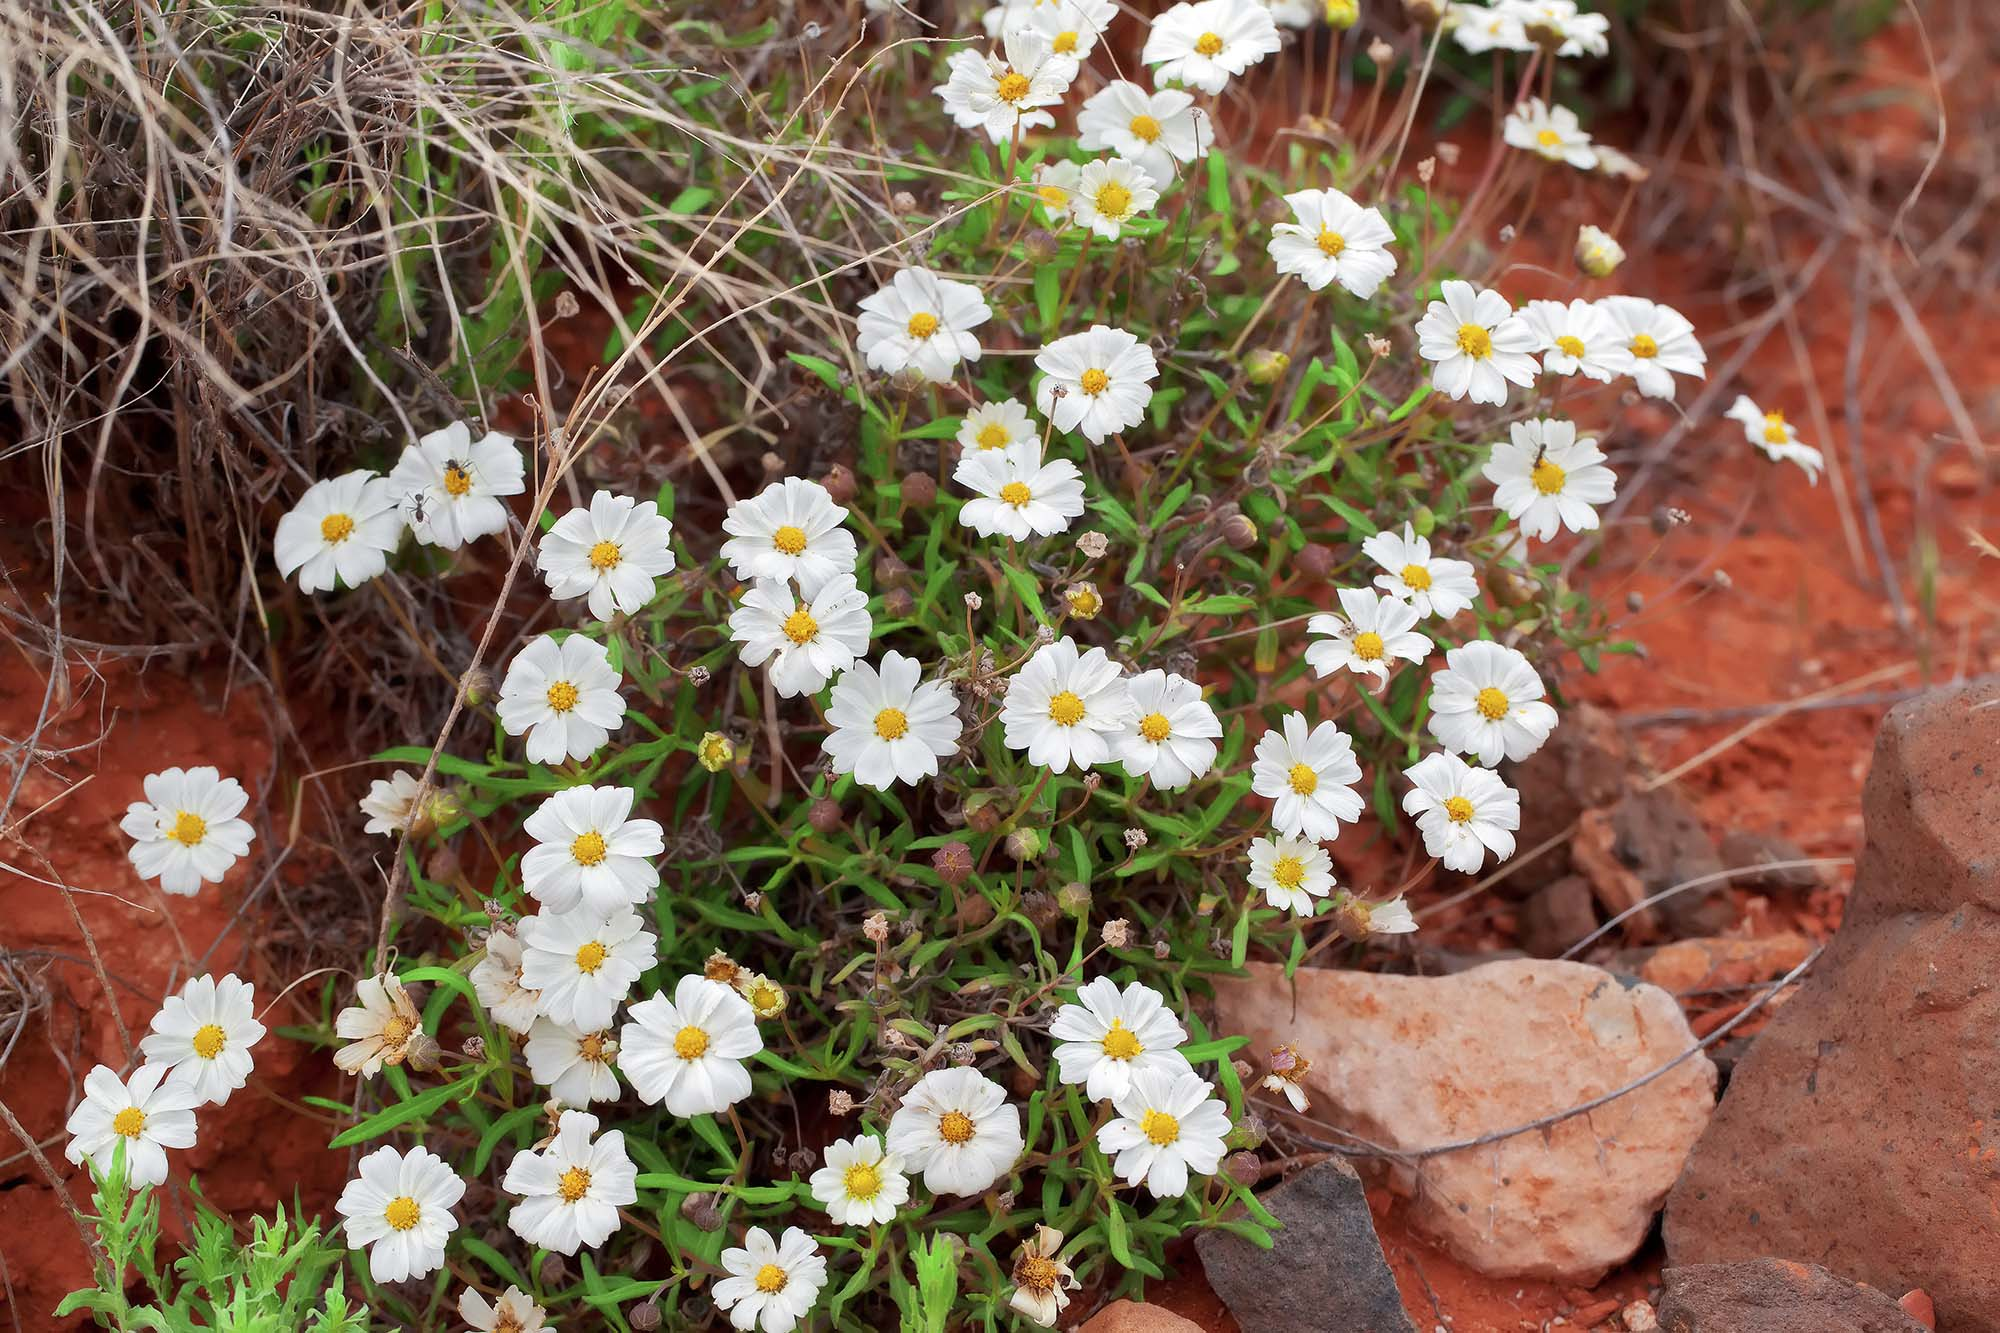 Daisy madang ples bilong mi popping up everywhere in the desert are a variety of tiny blossoms which appear to me to be daisies of some kind im hopelessly uninformed about the local mightylinksfo